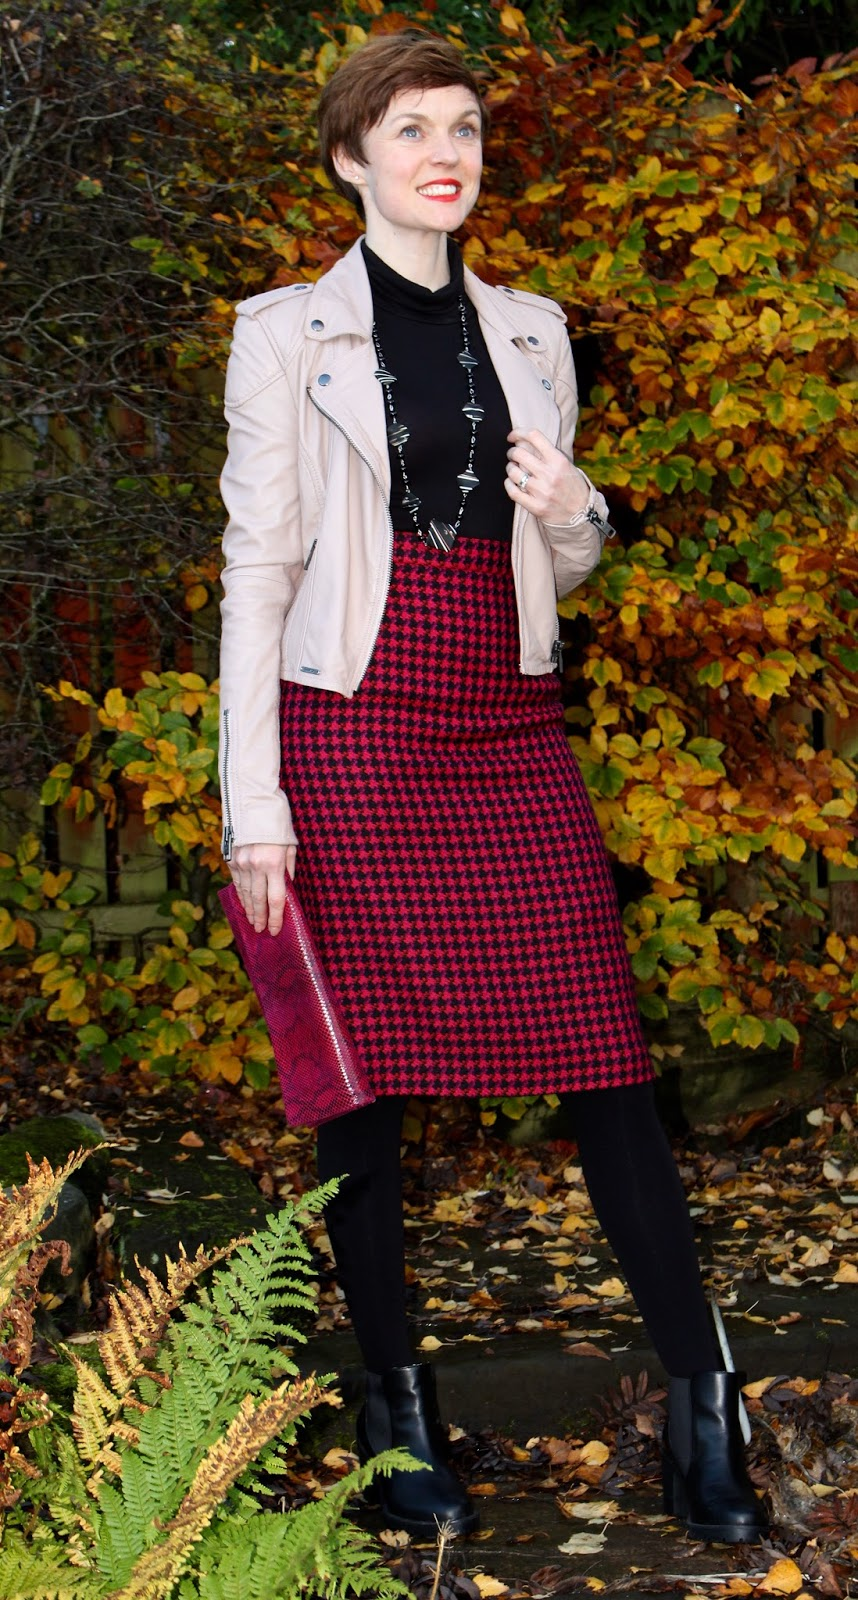 Vintage pencil skirt & chunky boots | Fake fabulous